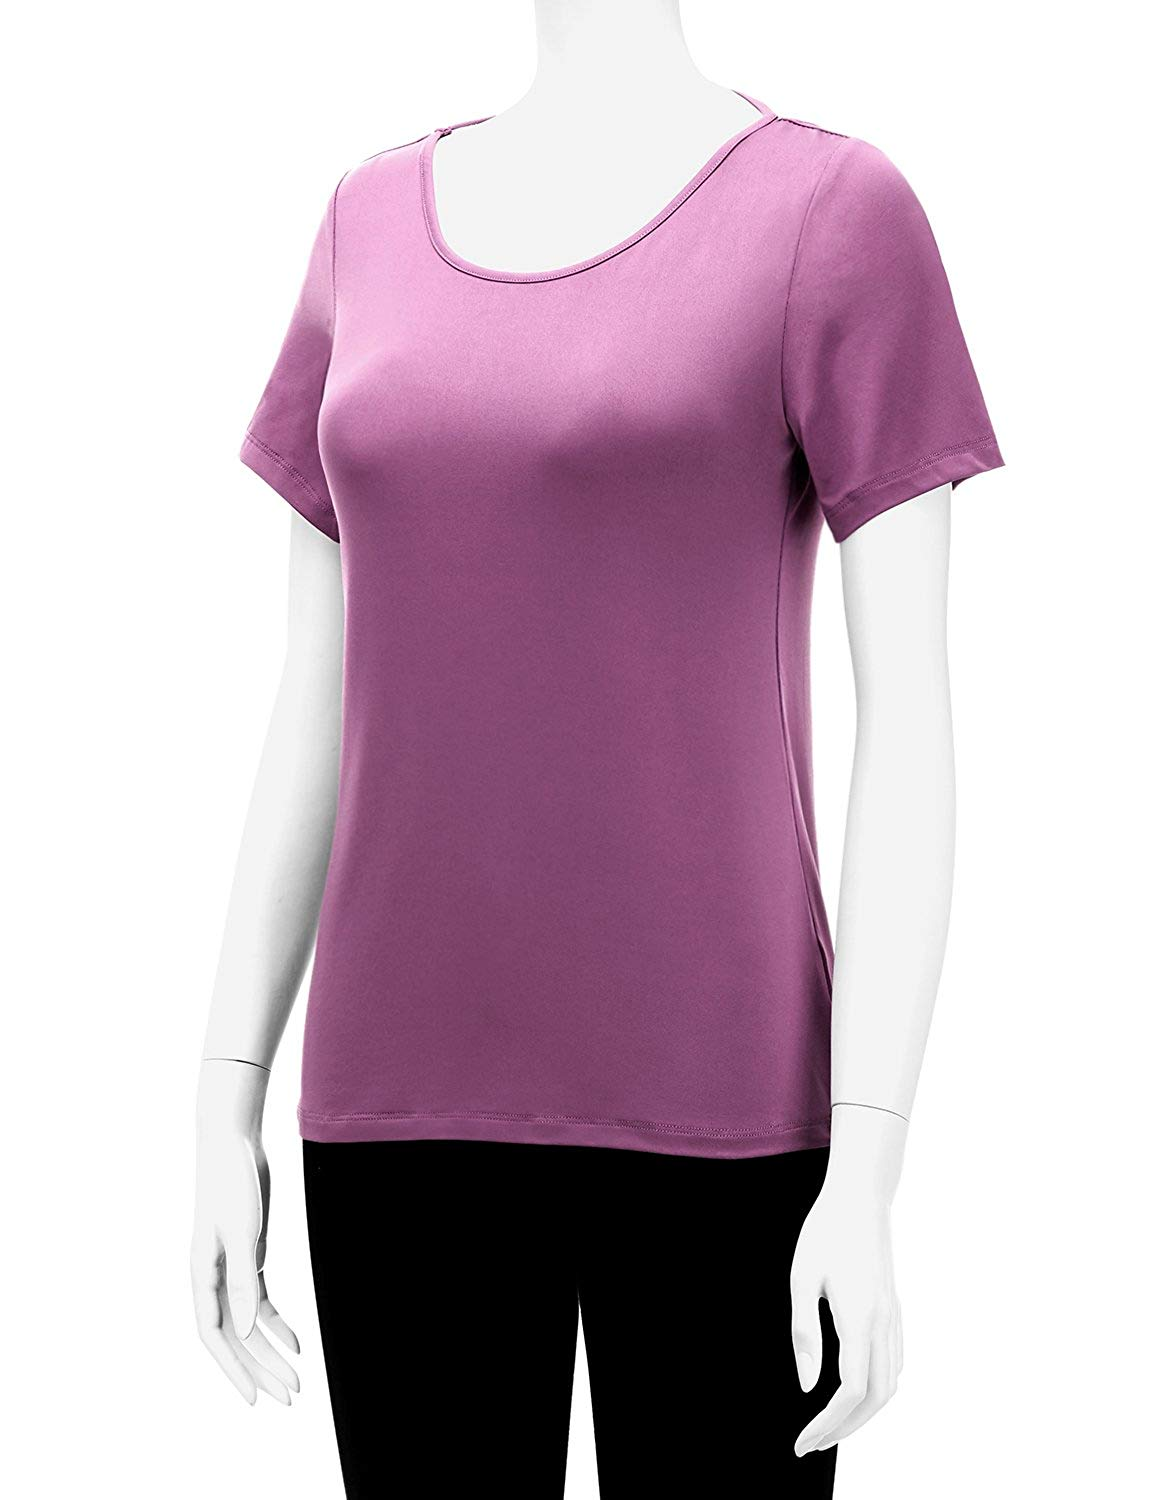 13 Piece Women s Moisture Sport Performance Tops Broadcloth Casual Cotton Animal Butterfly Sleeve Long V